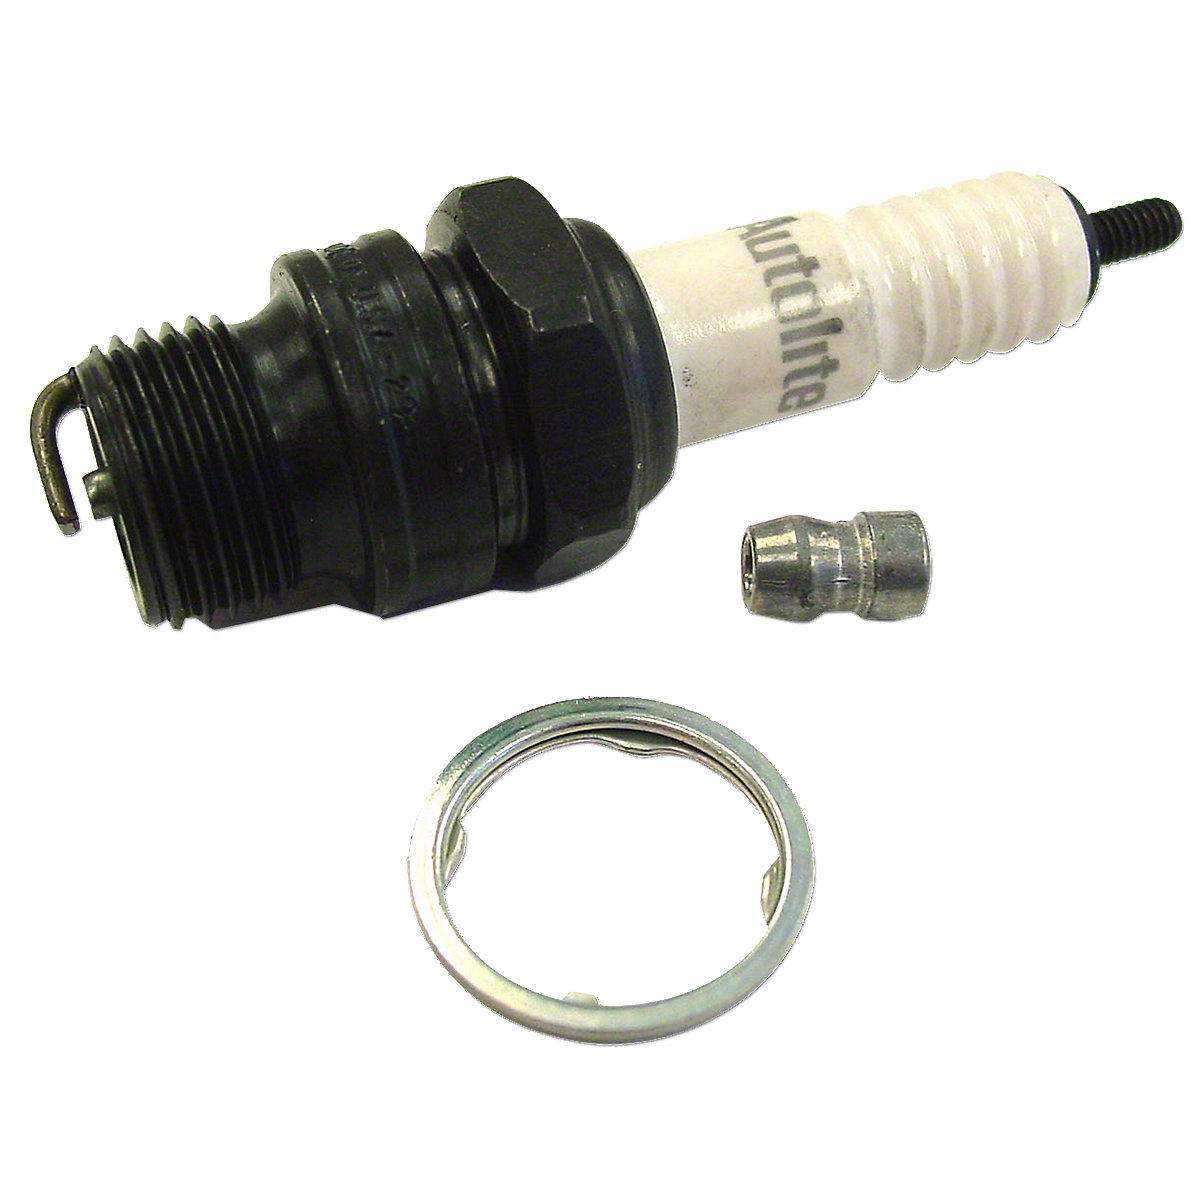 Spark Plug For Massey Ferguson: 150, 165, TE20, TO20, TO30, TO35, 50, 1100 6 Cyl, 135, 180, 230, 235, 245, 35, 50, 65, 85, 88, 97 LP, Super 90, Massey Harris: Colt 21, Mustang 23, Pacer 16, Pony, 101 jr, 102 jr, 20, 22, 30, 33, 333, 44, 44-6, 444, 50, 55,